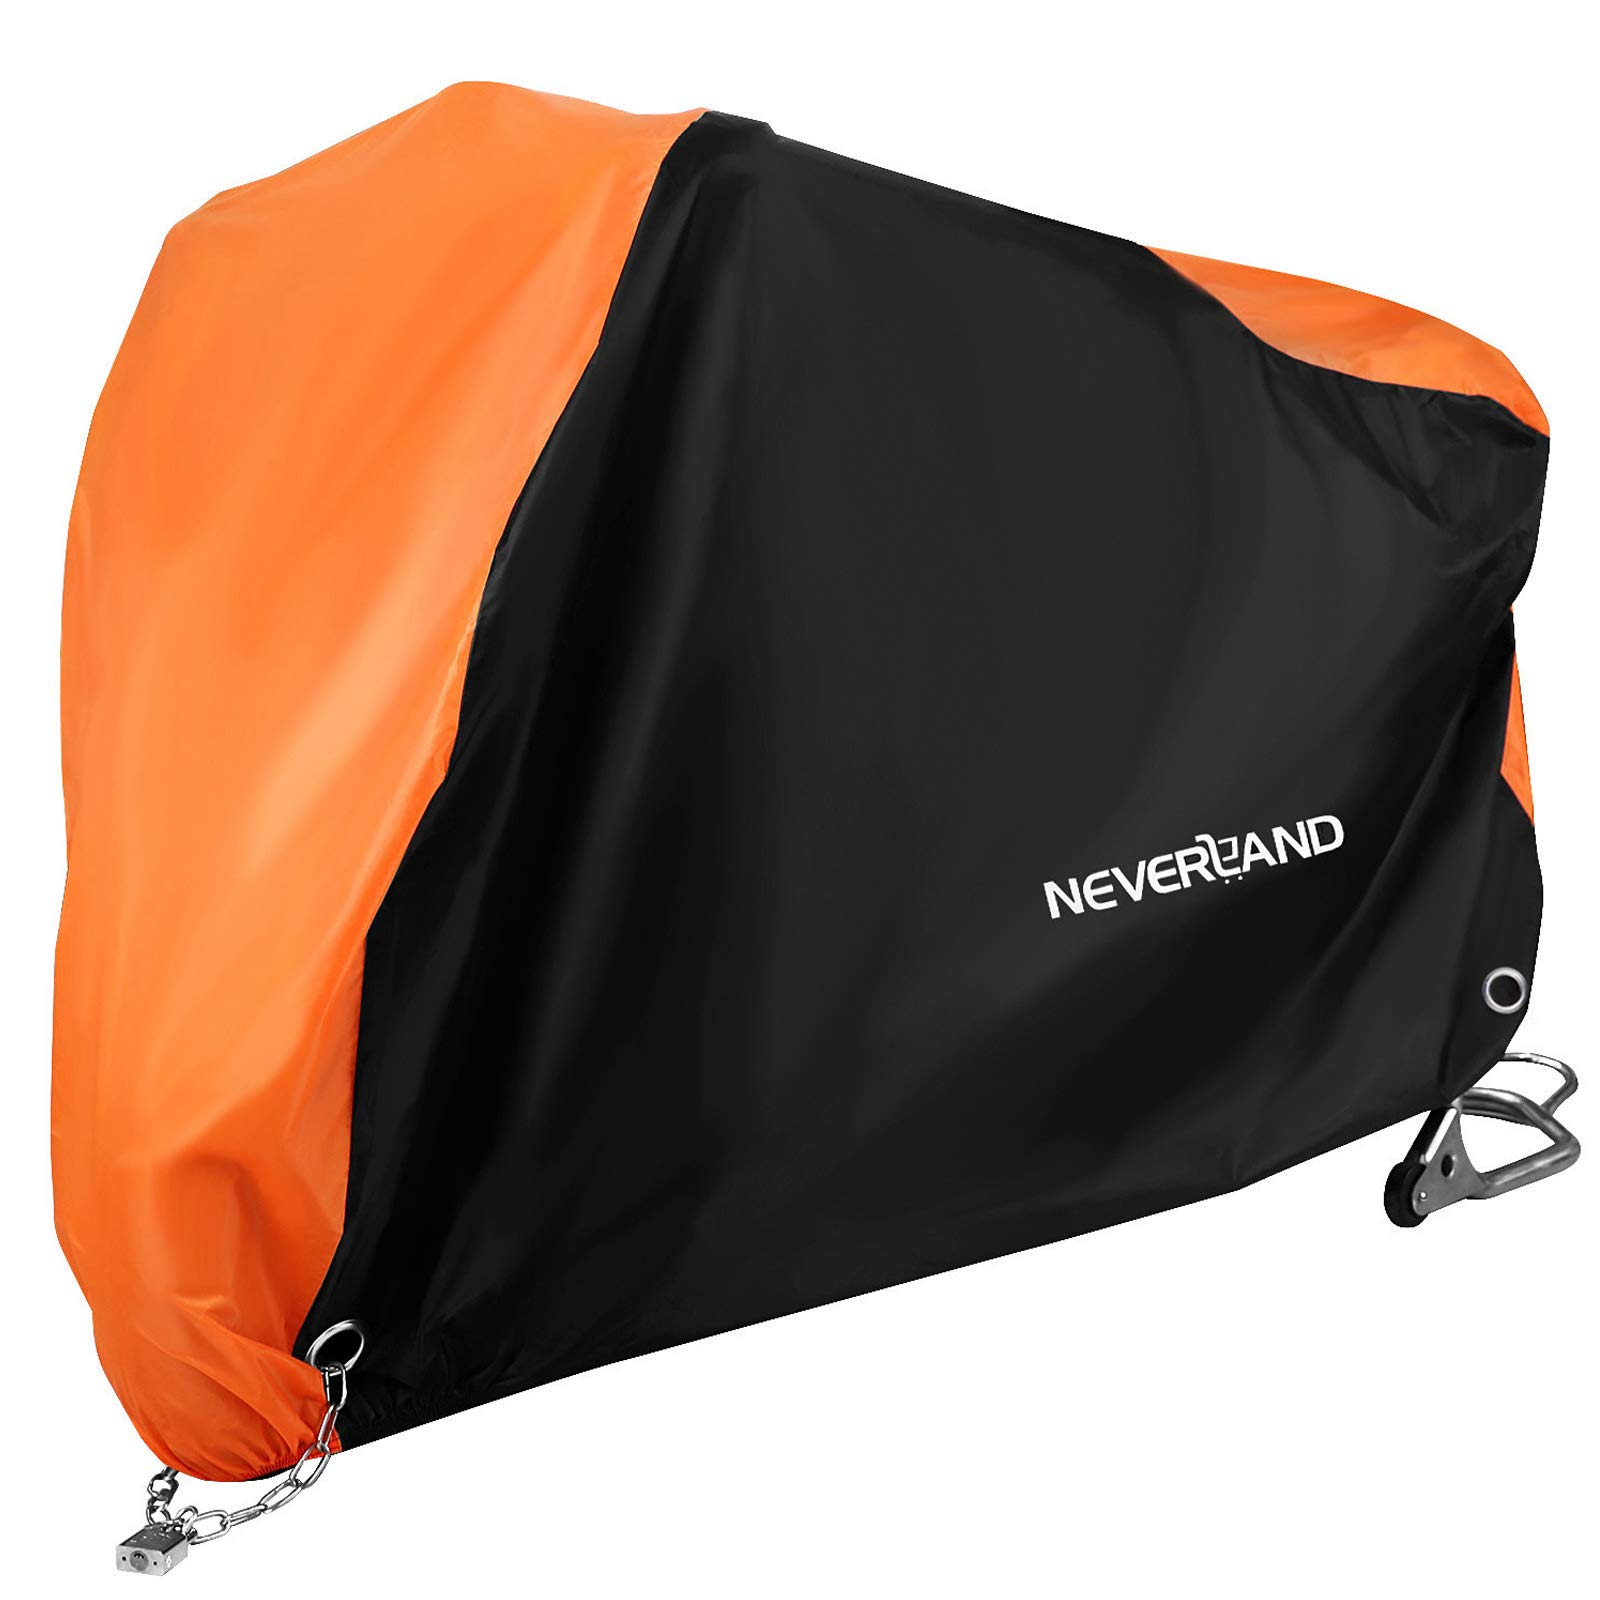 NEVERLAND Motorcycle Cover,Outdoor Waterproof Oxford Cloth UV Dust Protector lockable Bandage,scooter Cover Fit less than 71'' Scooter,Small Displacement Off-Road Bike(Black & Orange) by NEVERLAND